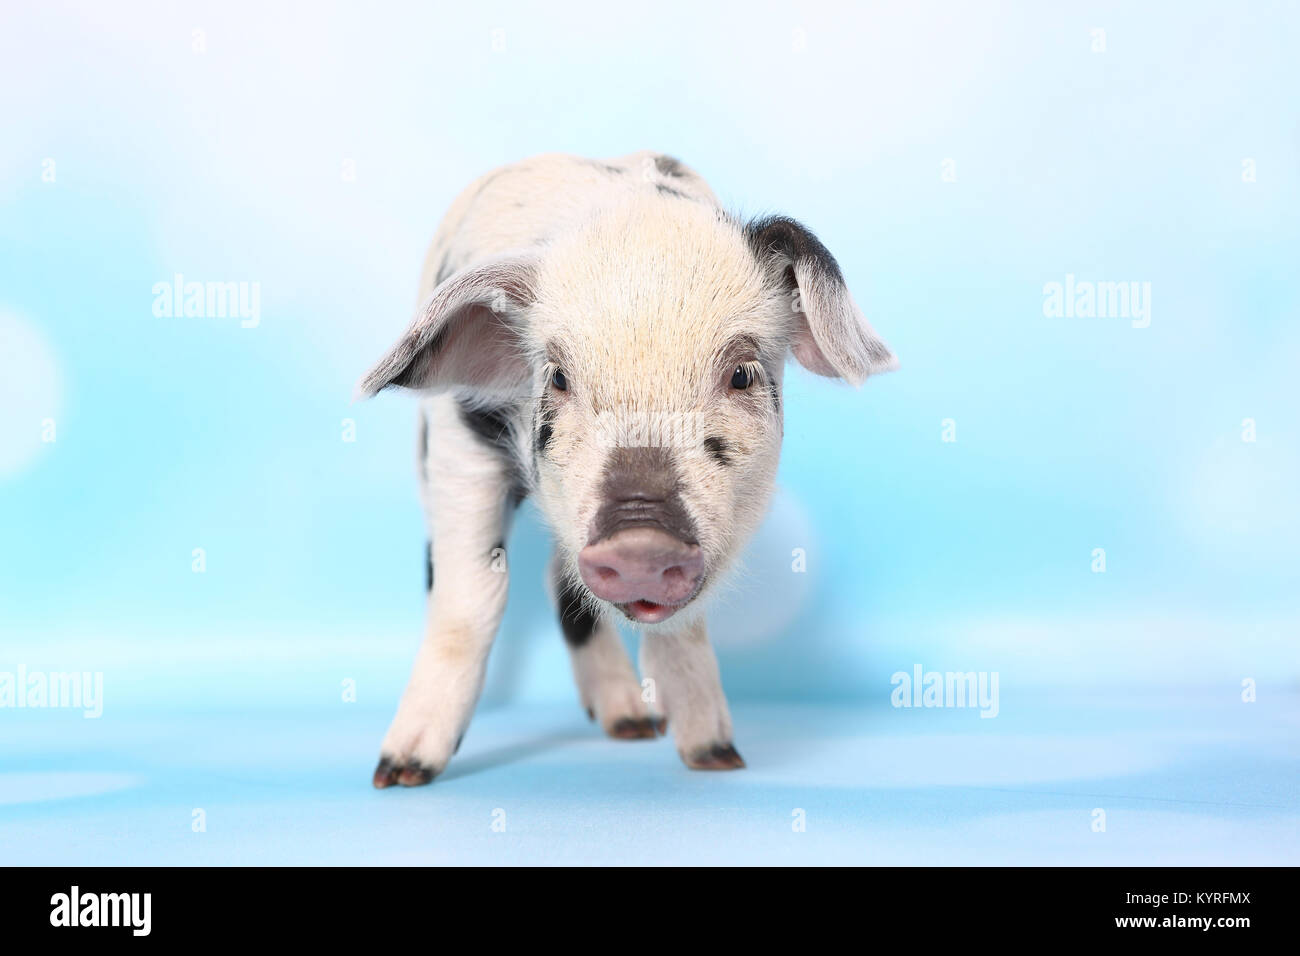 Laughing Pig Animal Stock Photos & Laughing Pig Animal ... - photo#32